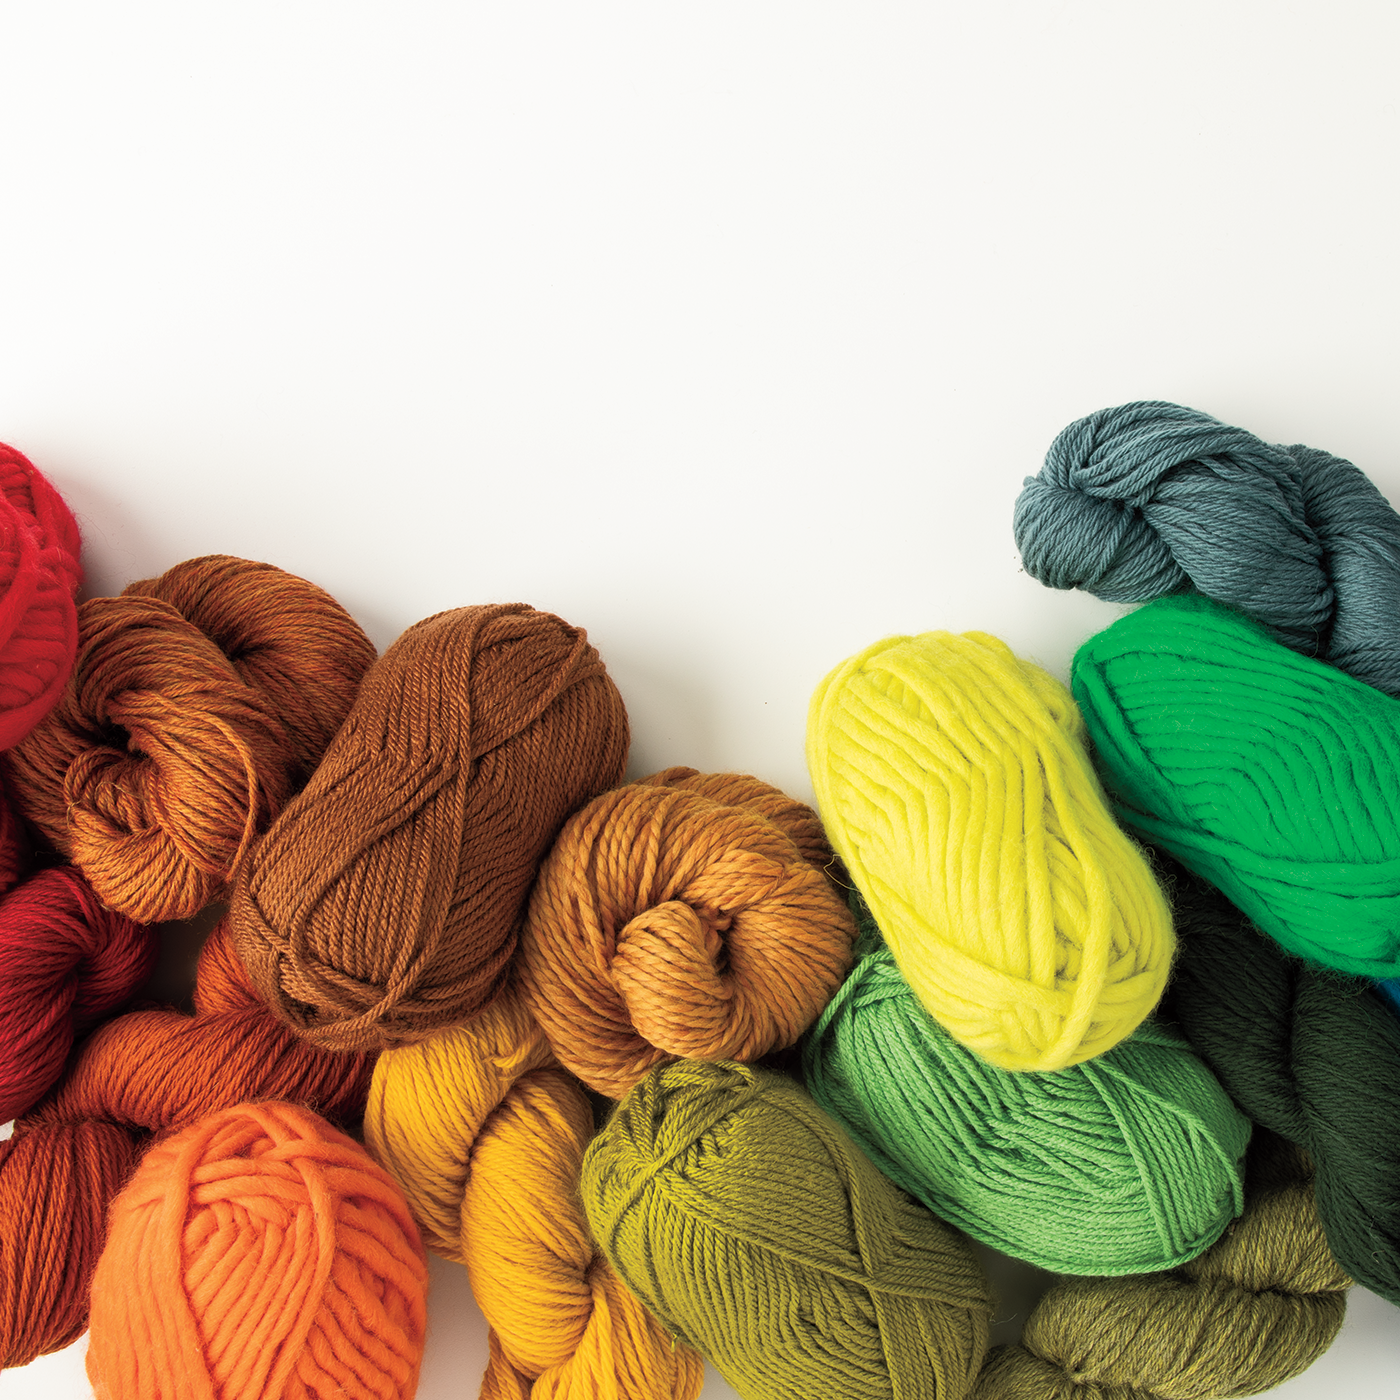 Episode 346 - An Ode to Chunky Yarns & Spinning with Michael Smith